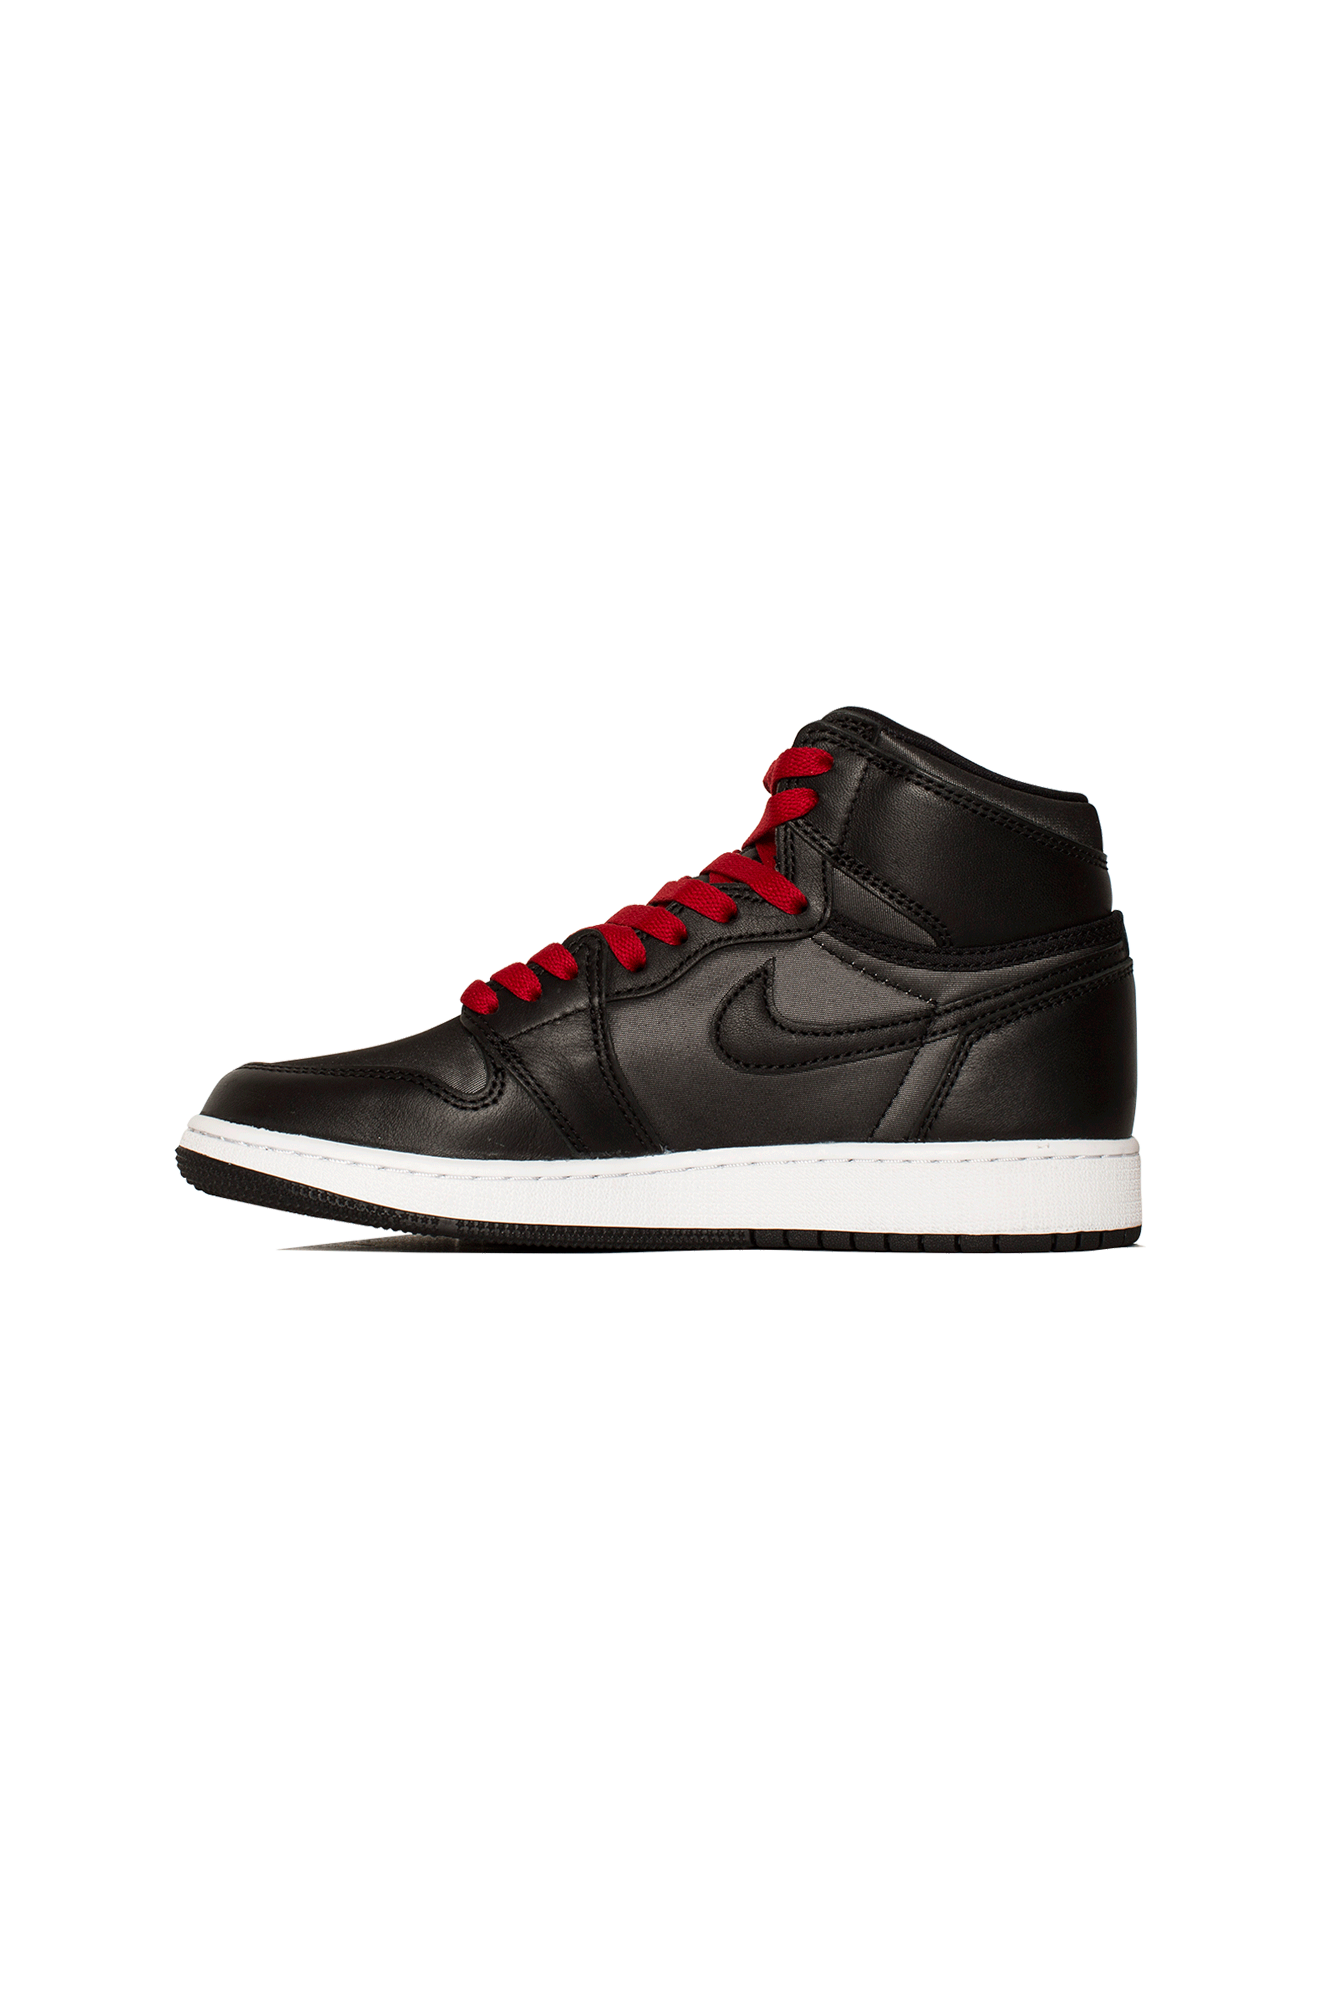 Air Jordan 1 Bloodline Kids 575441 062 Release Info